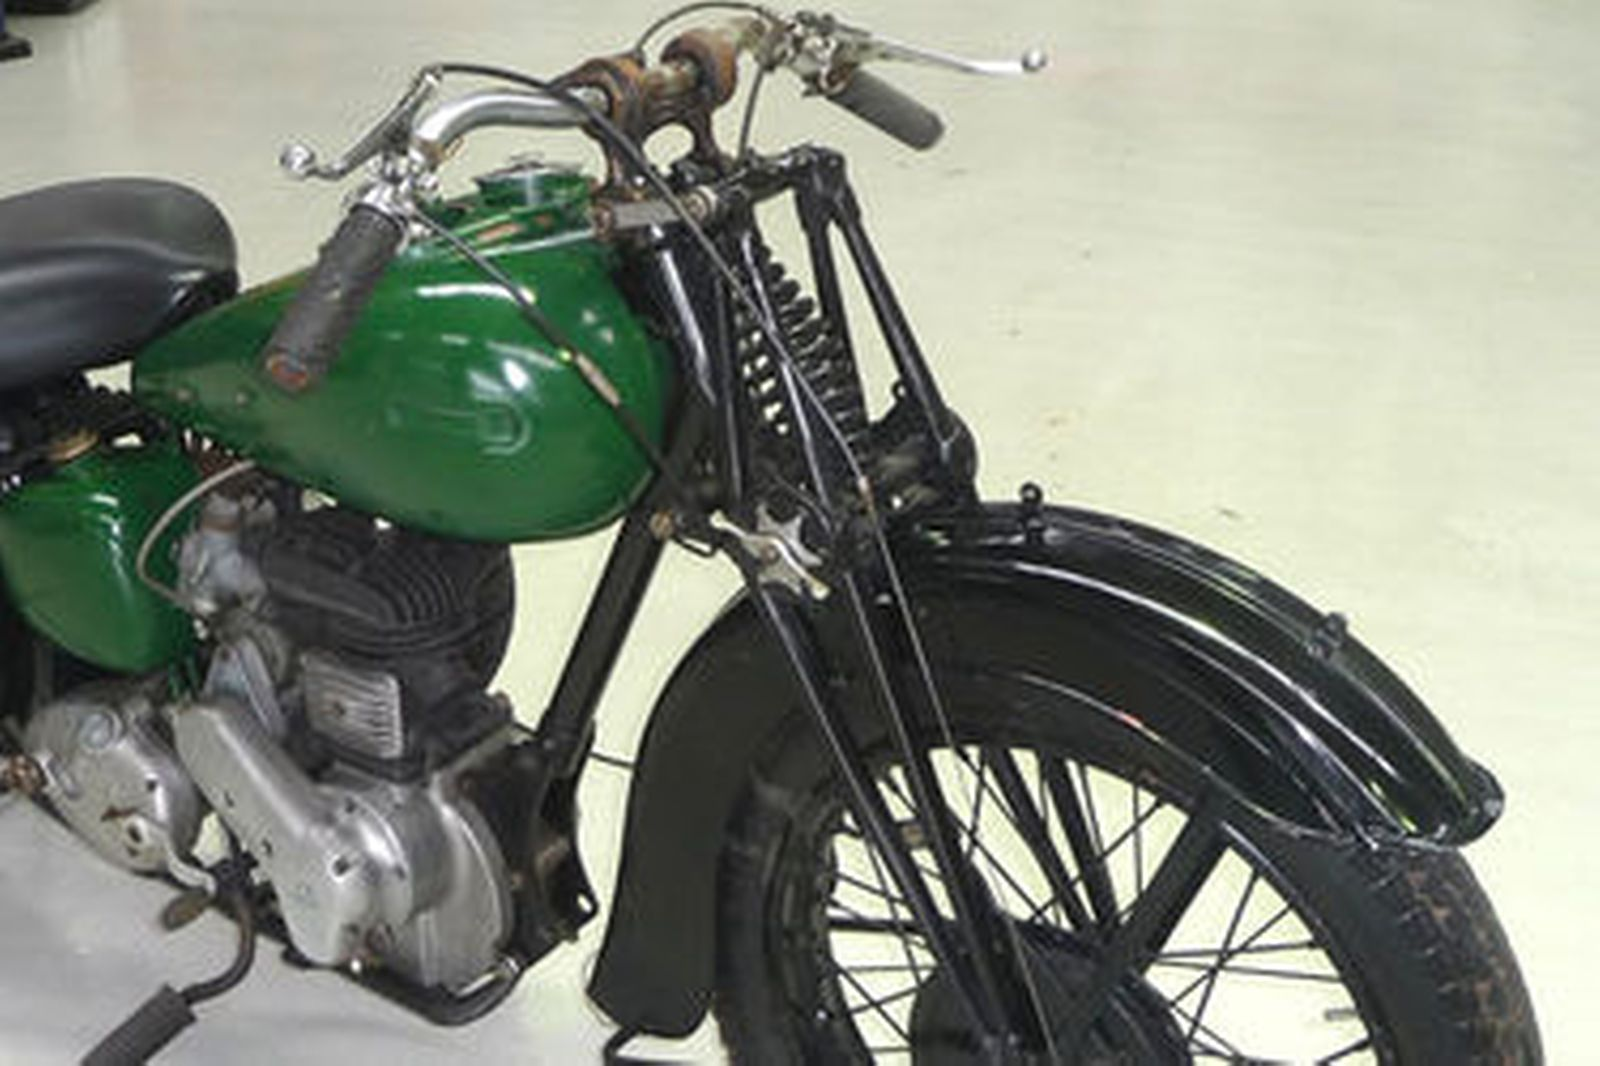 Sold: Ariel VB 600 Solo Motorcycle (Project) Auctions ...